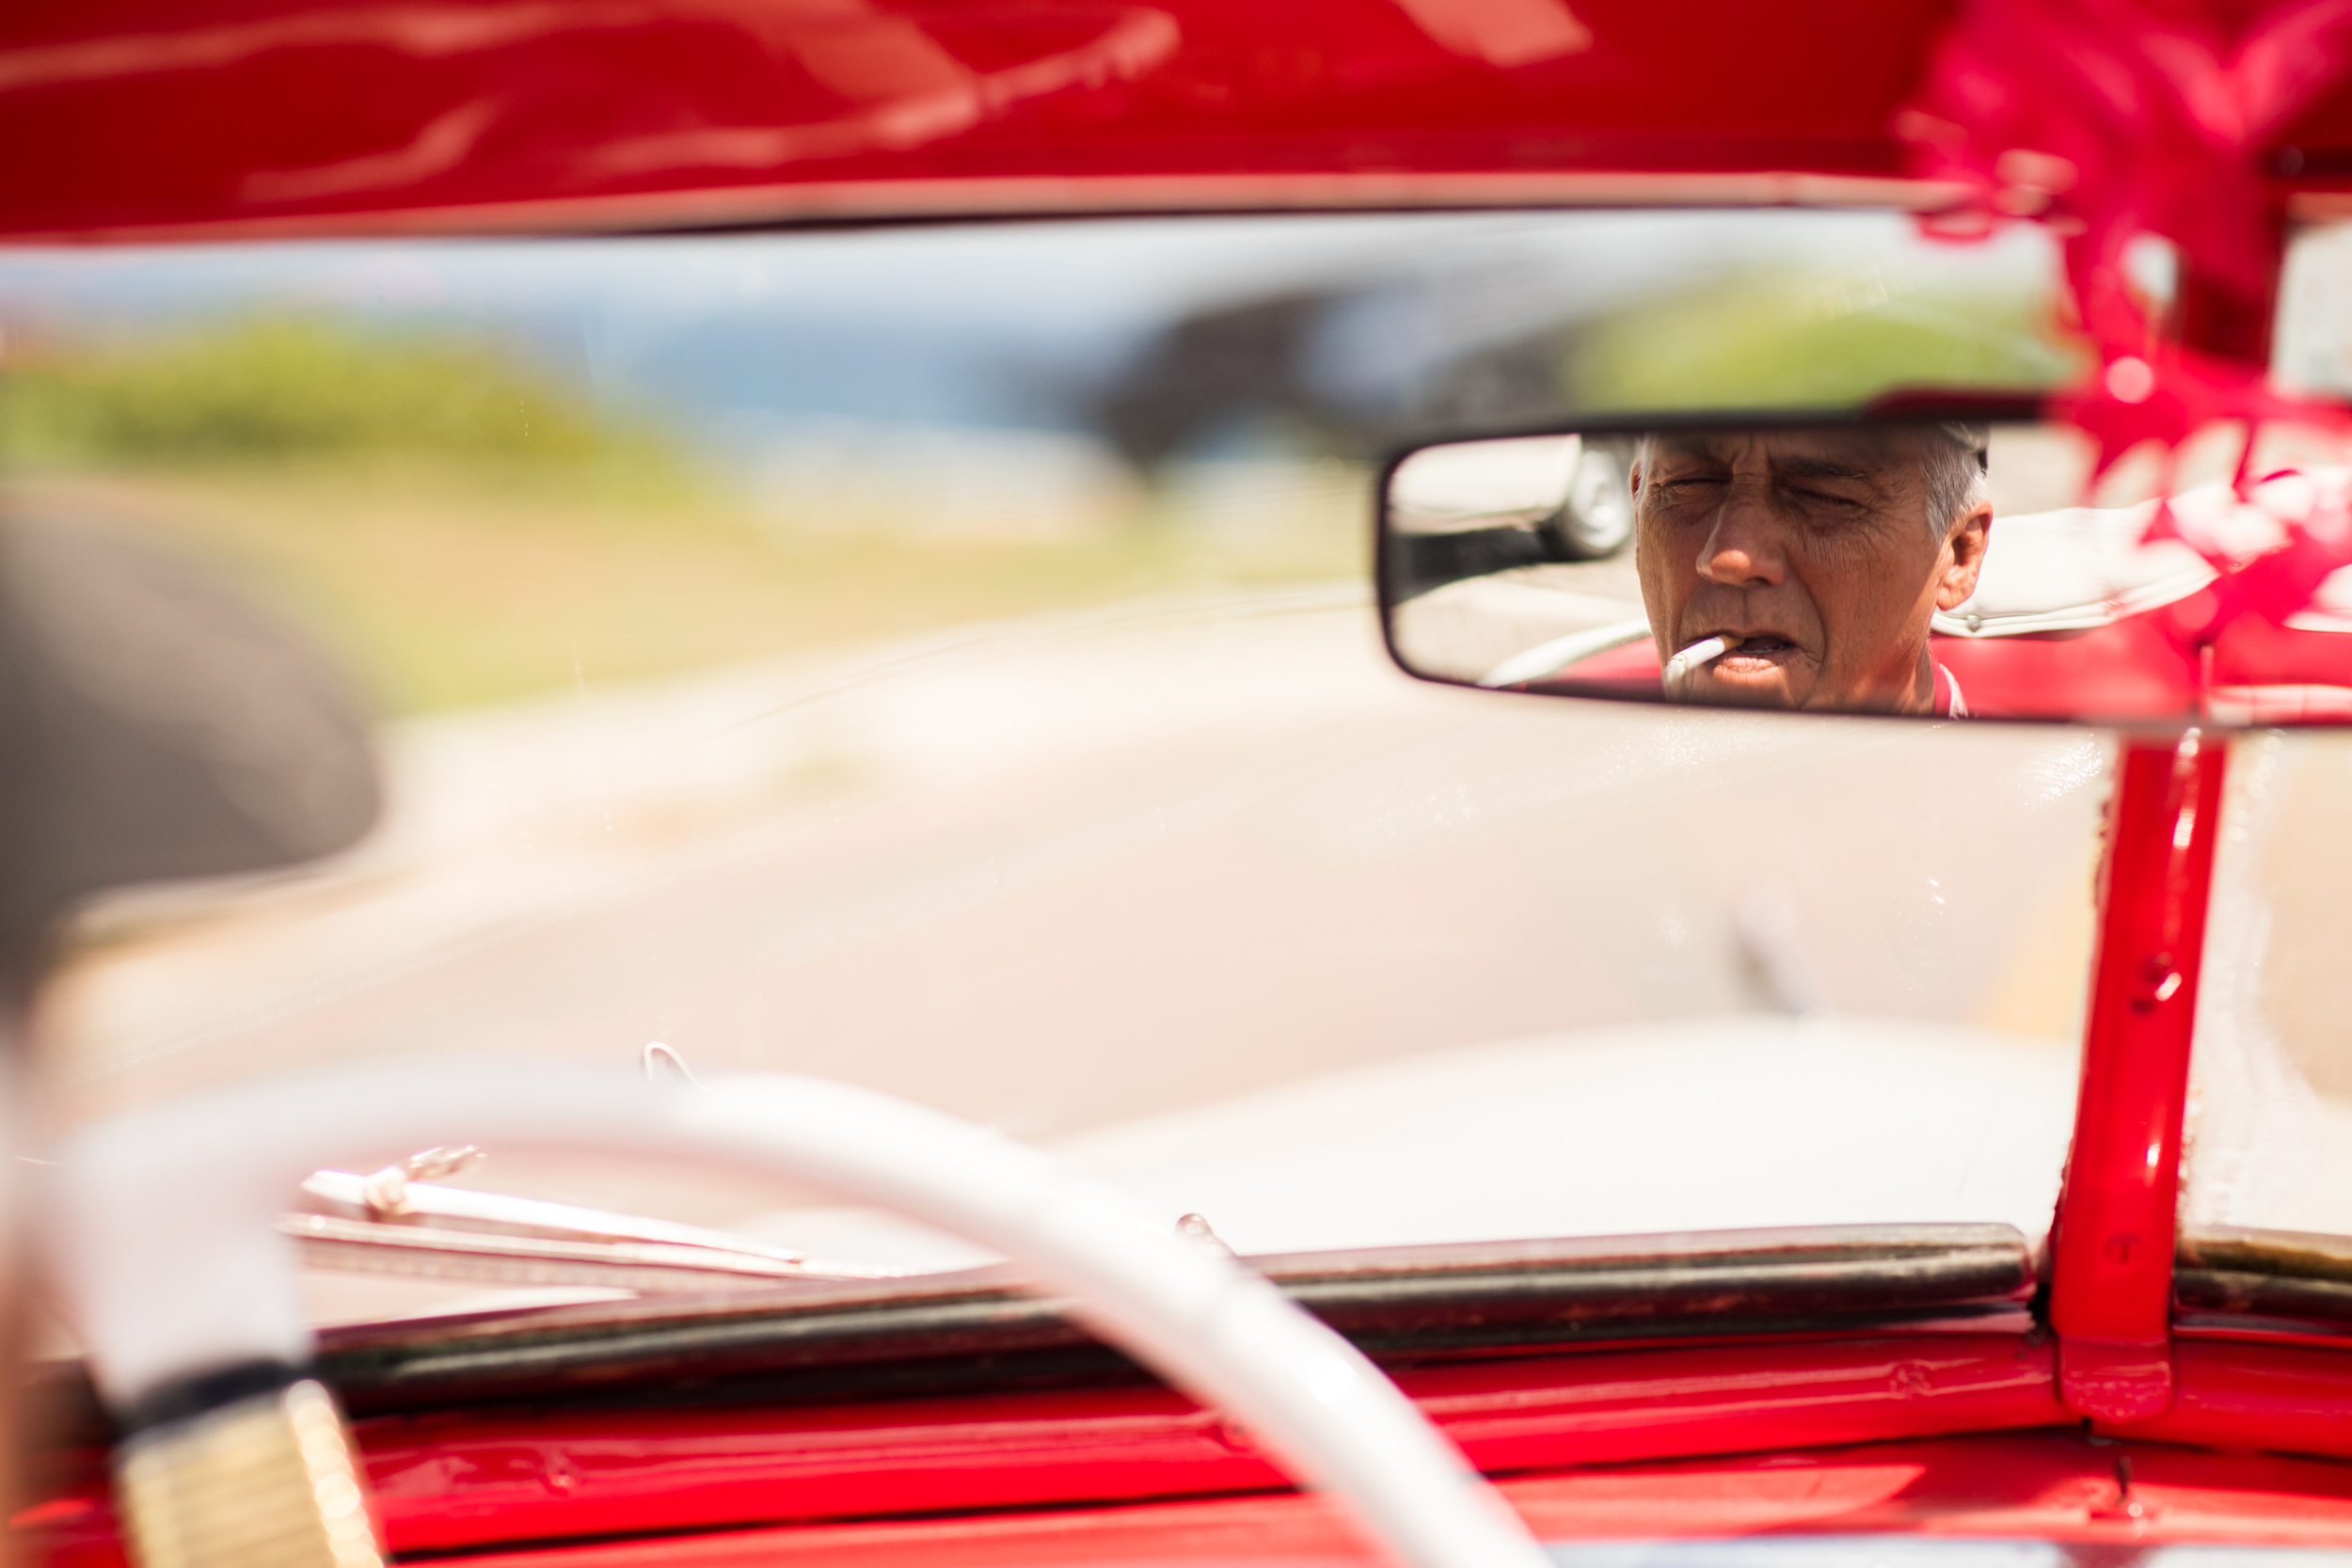 The owner of a 1948 DeSoto convertible, passed down fromhis father from his grandfather, makes a living driving tourists around Havana in his classic car.